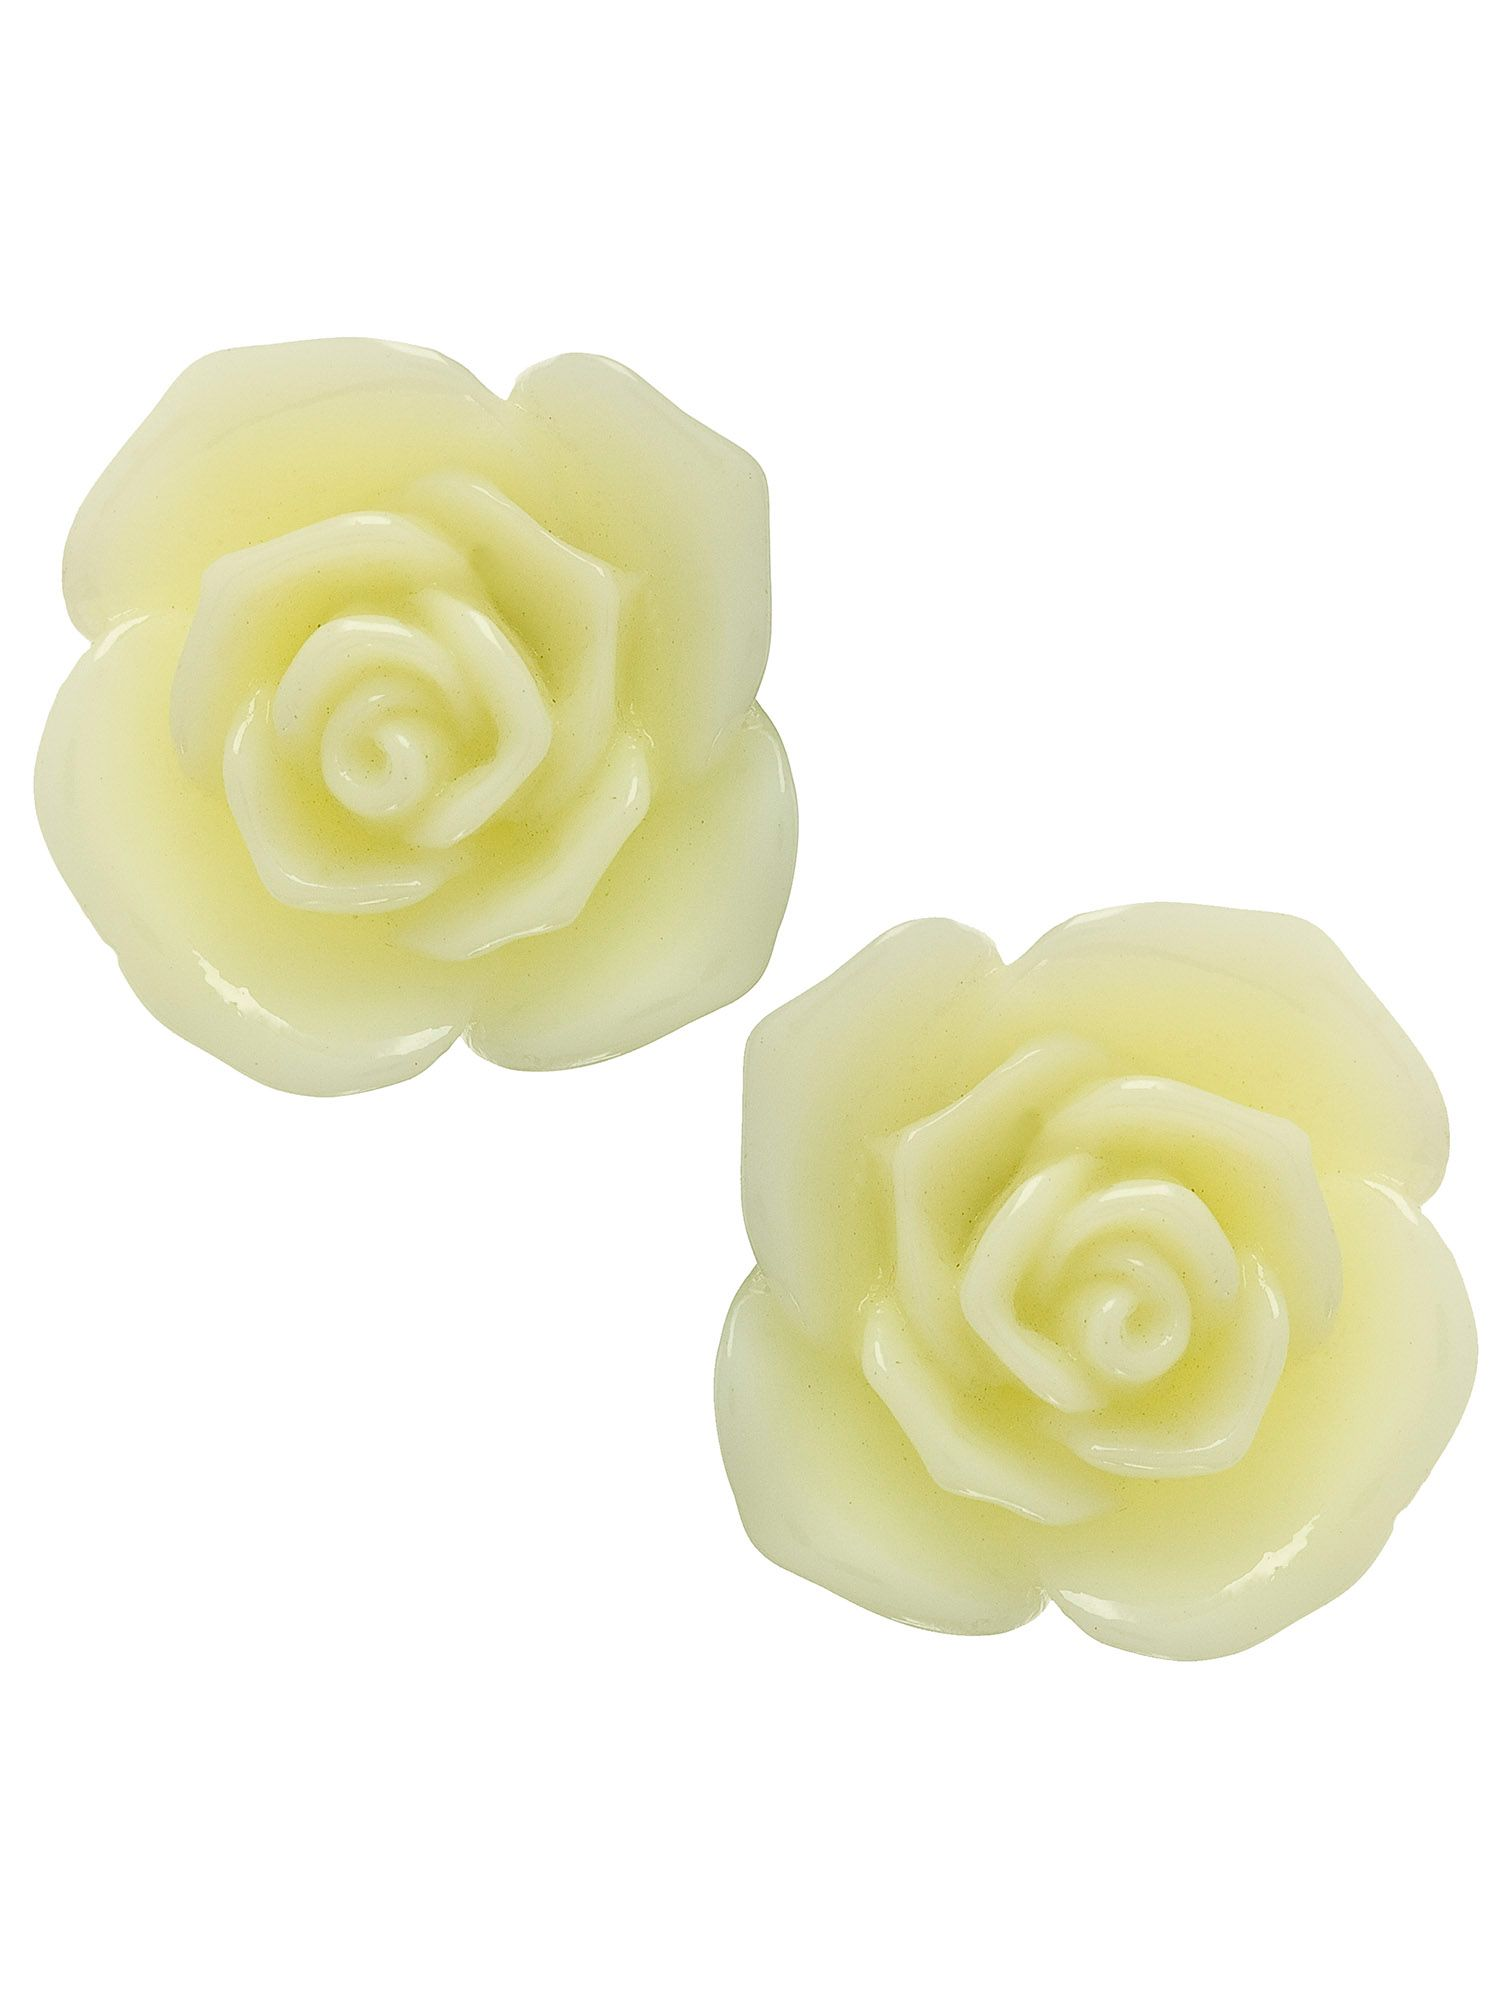 Resin flower stud